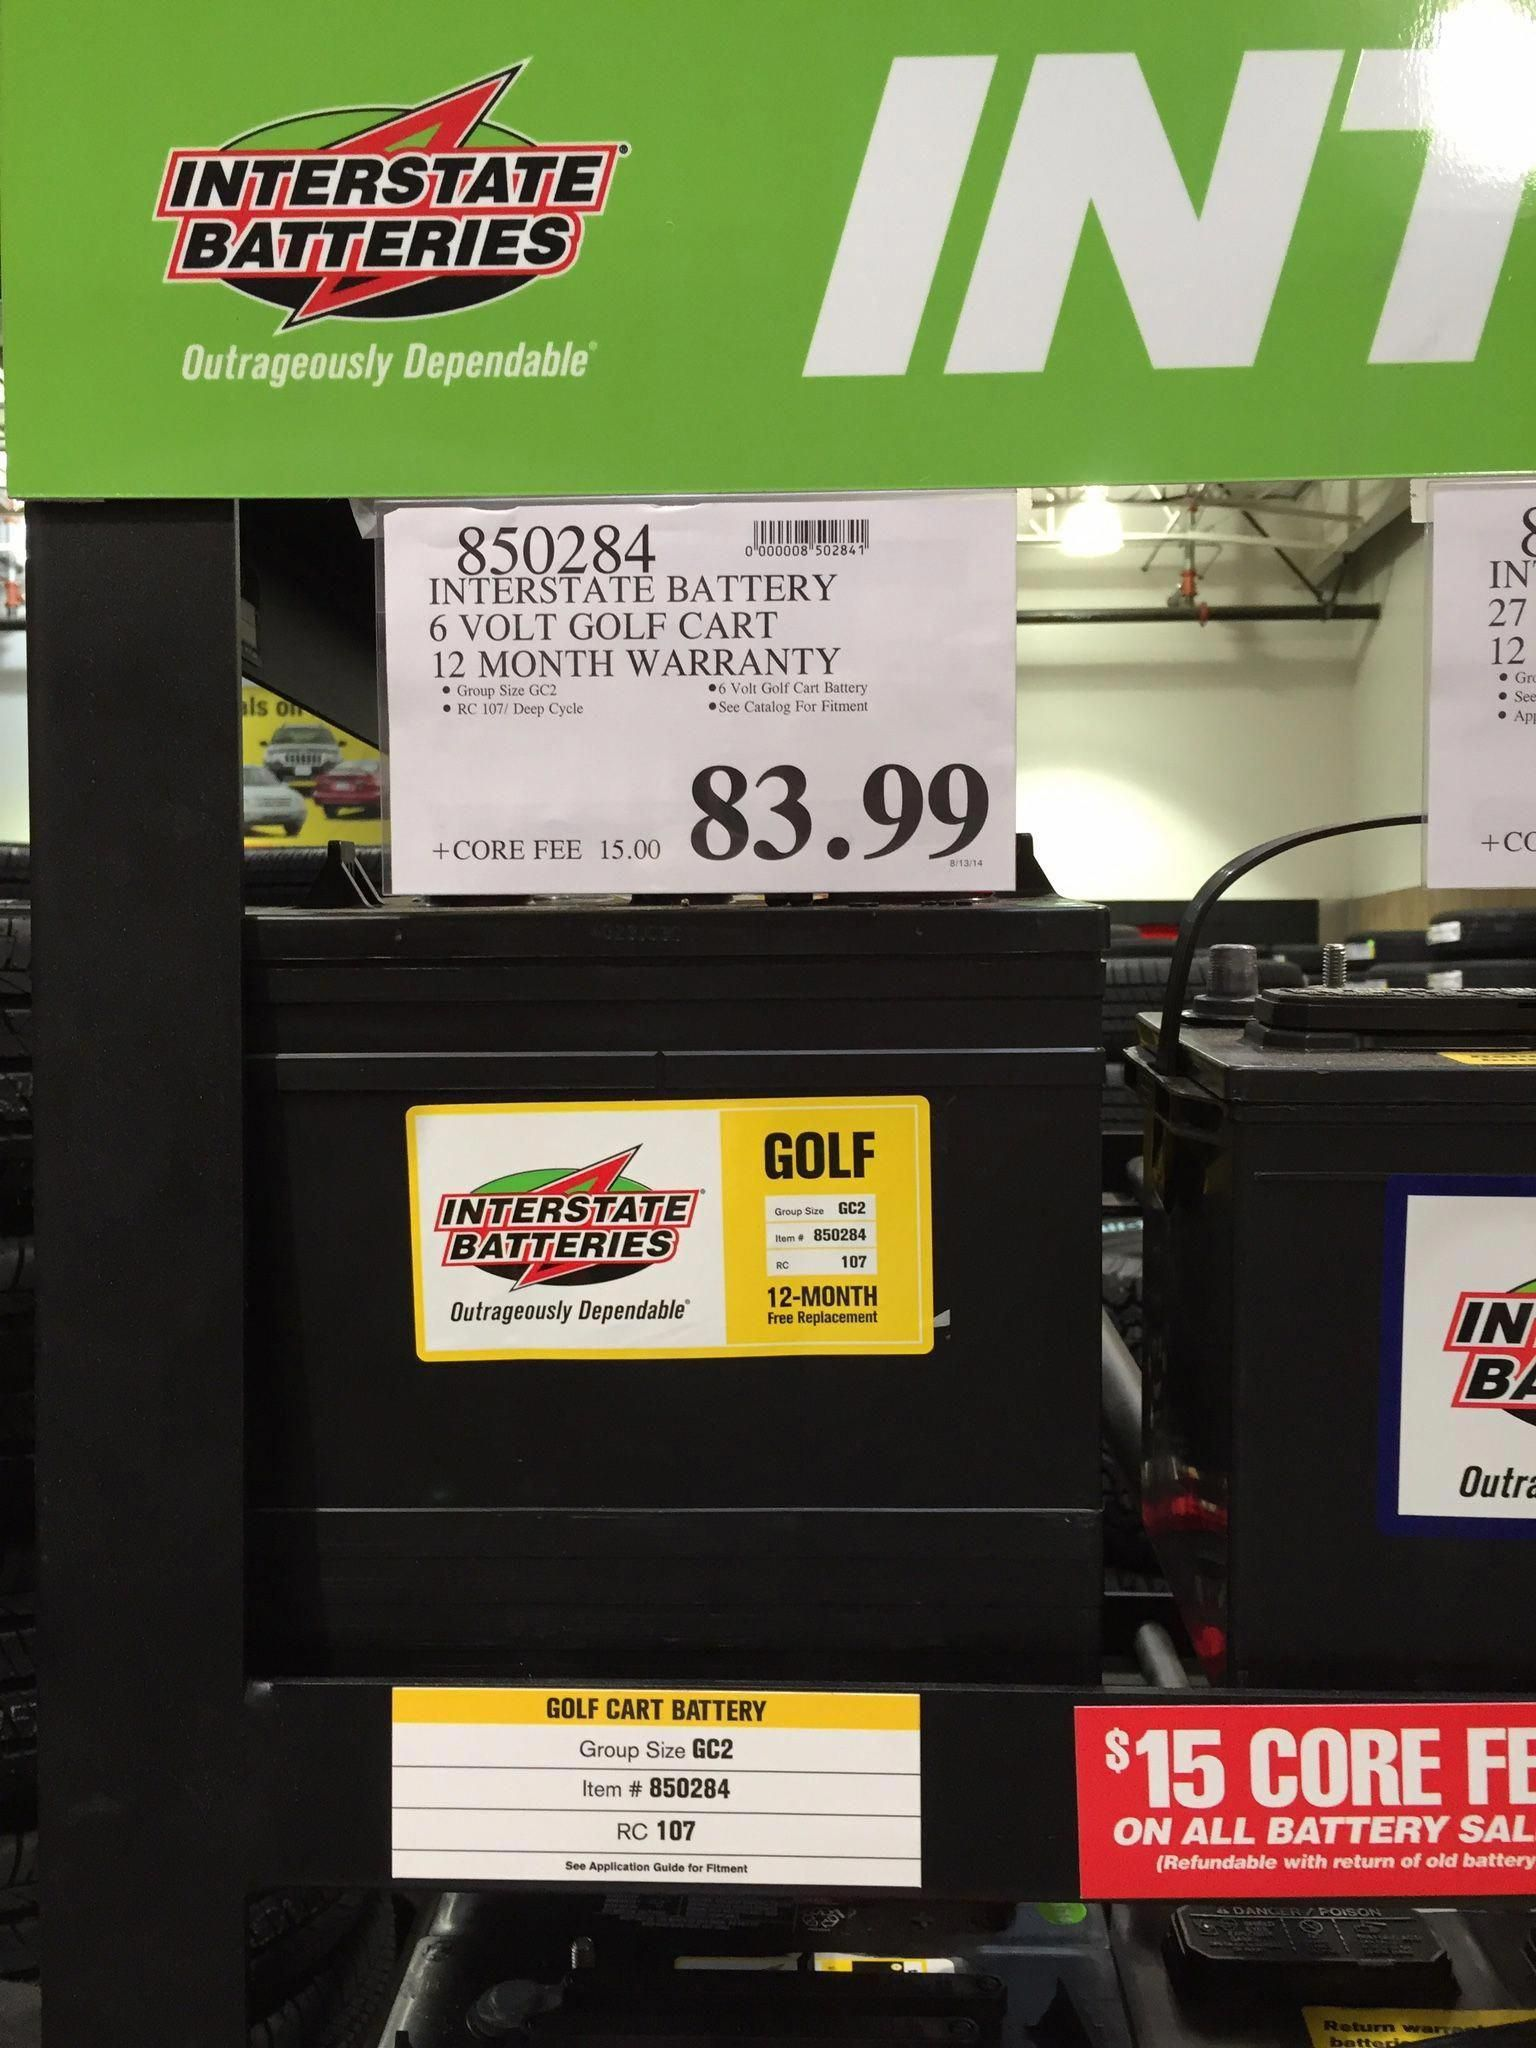 6 Volt Golf Cart Batteries From Costco For Solar Bank Storage Golf Cart Batteries Golf Carts Off Grid Batteries